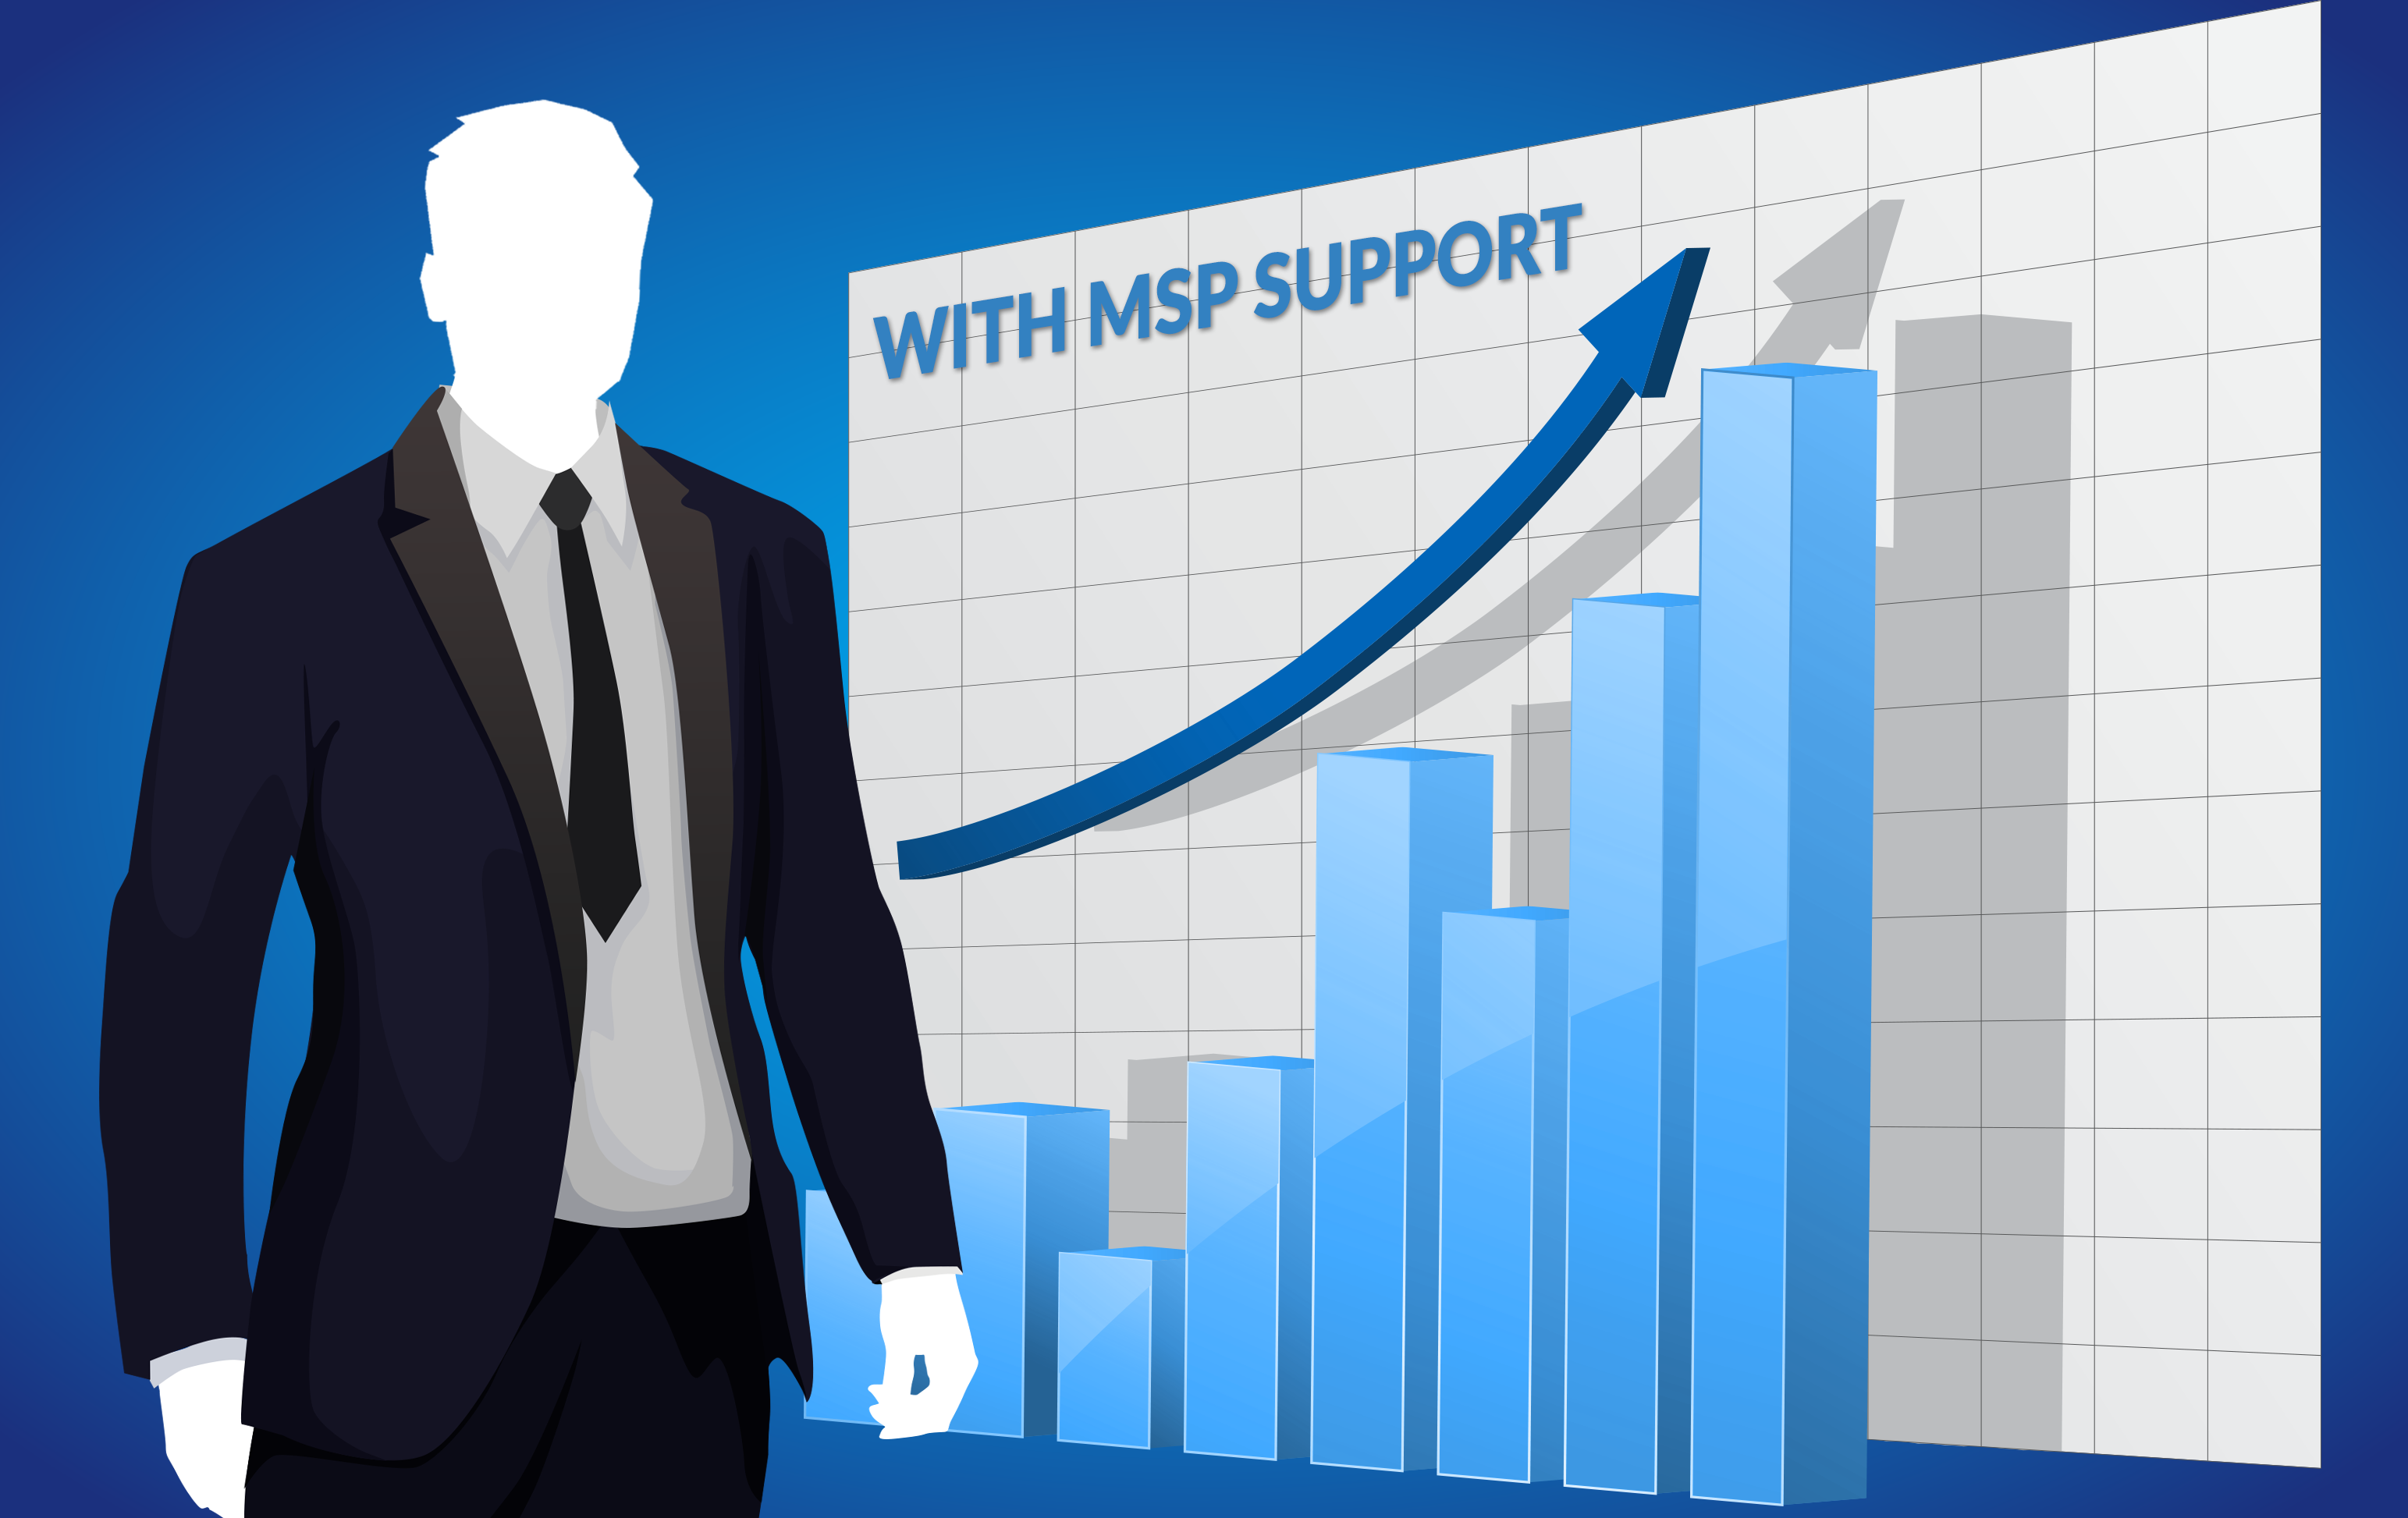 Find out why MSP support beats a Break-Fix approach to IT services.